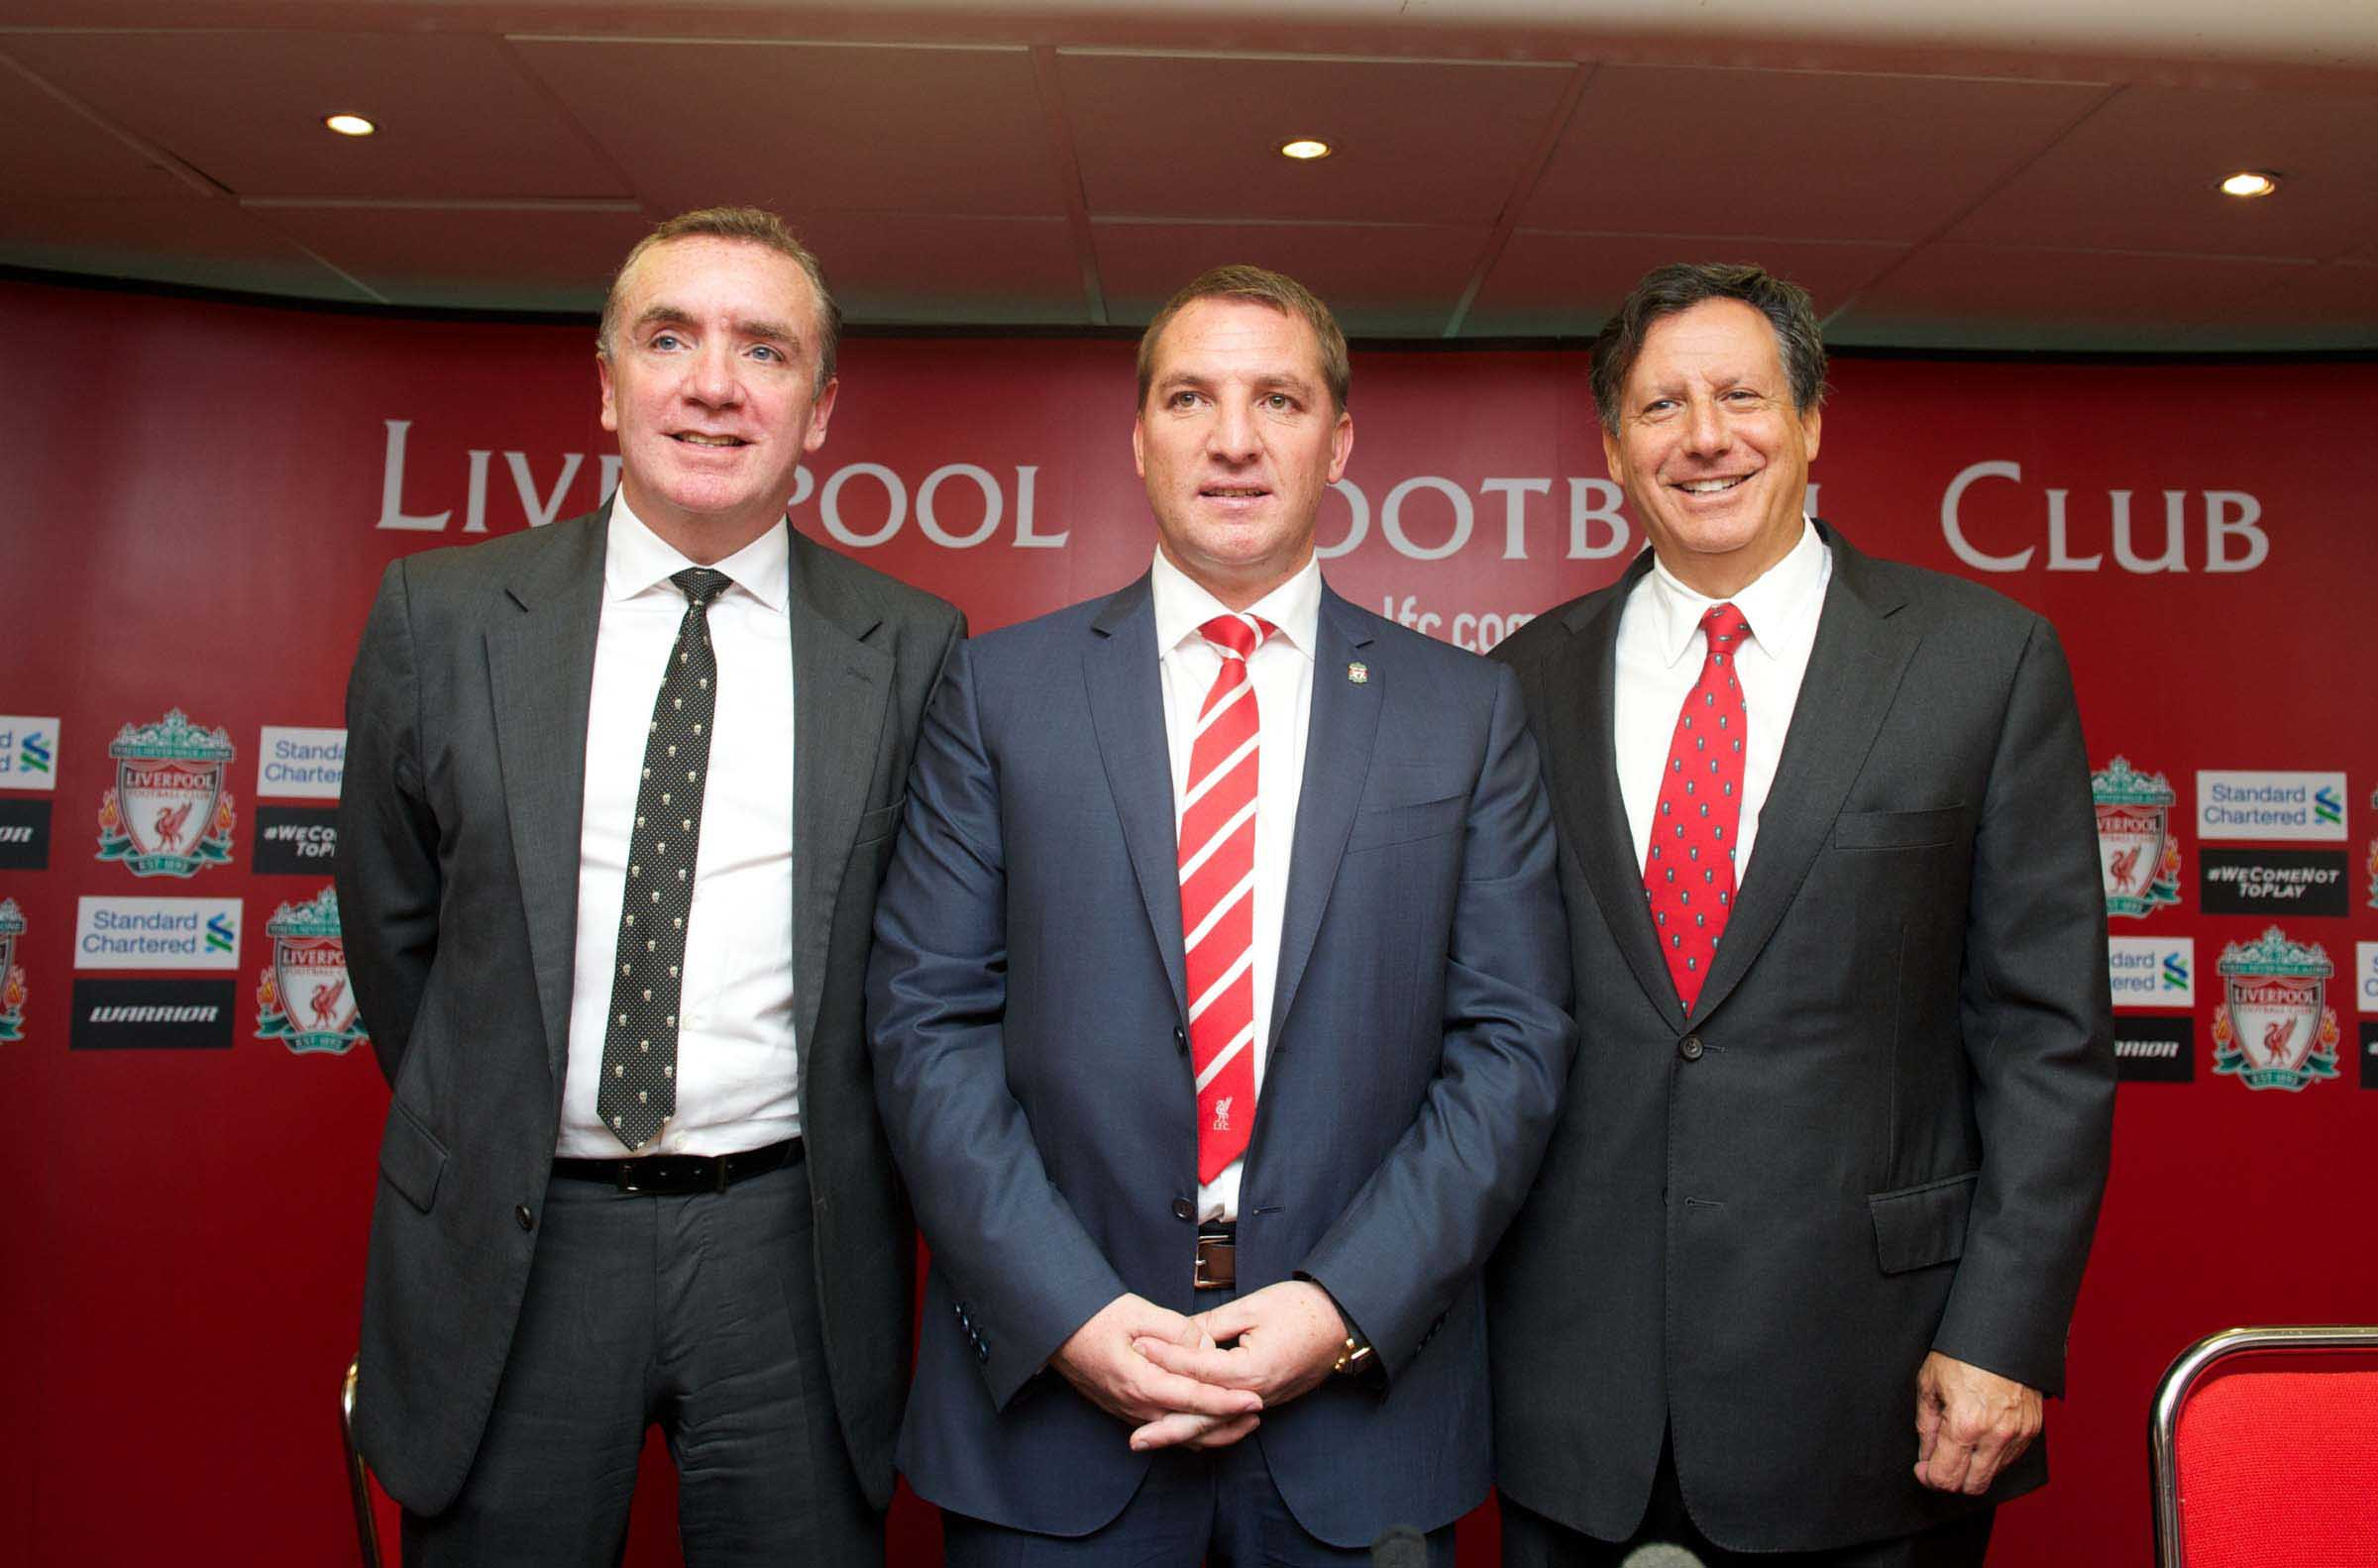 Football - Liverpool FC appoint Brendan Rodgers as manager